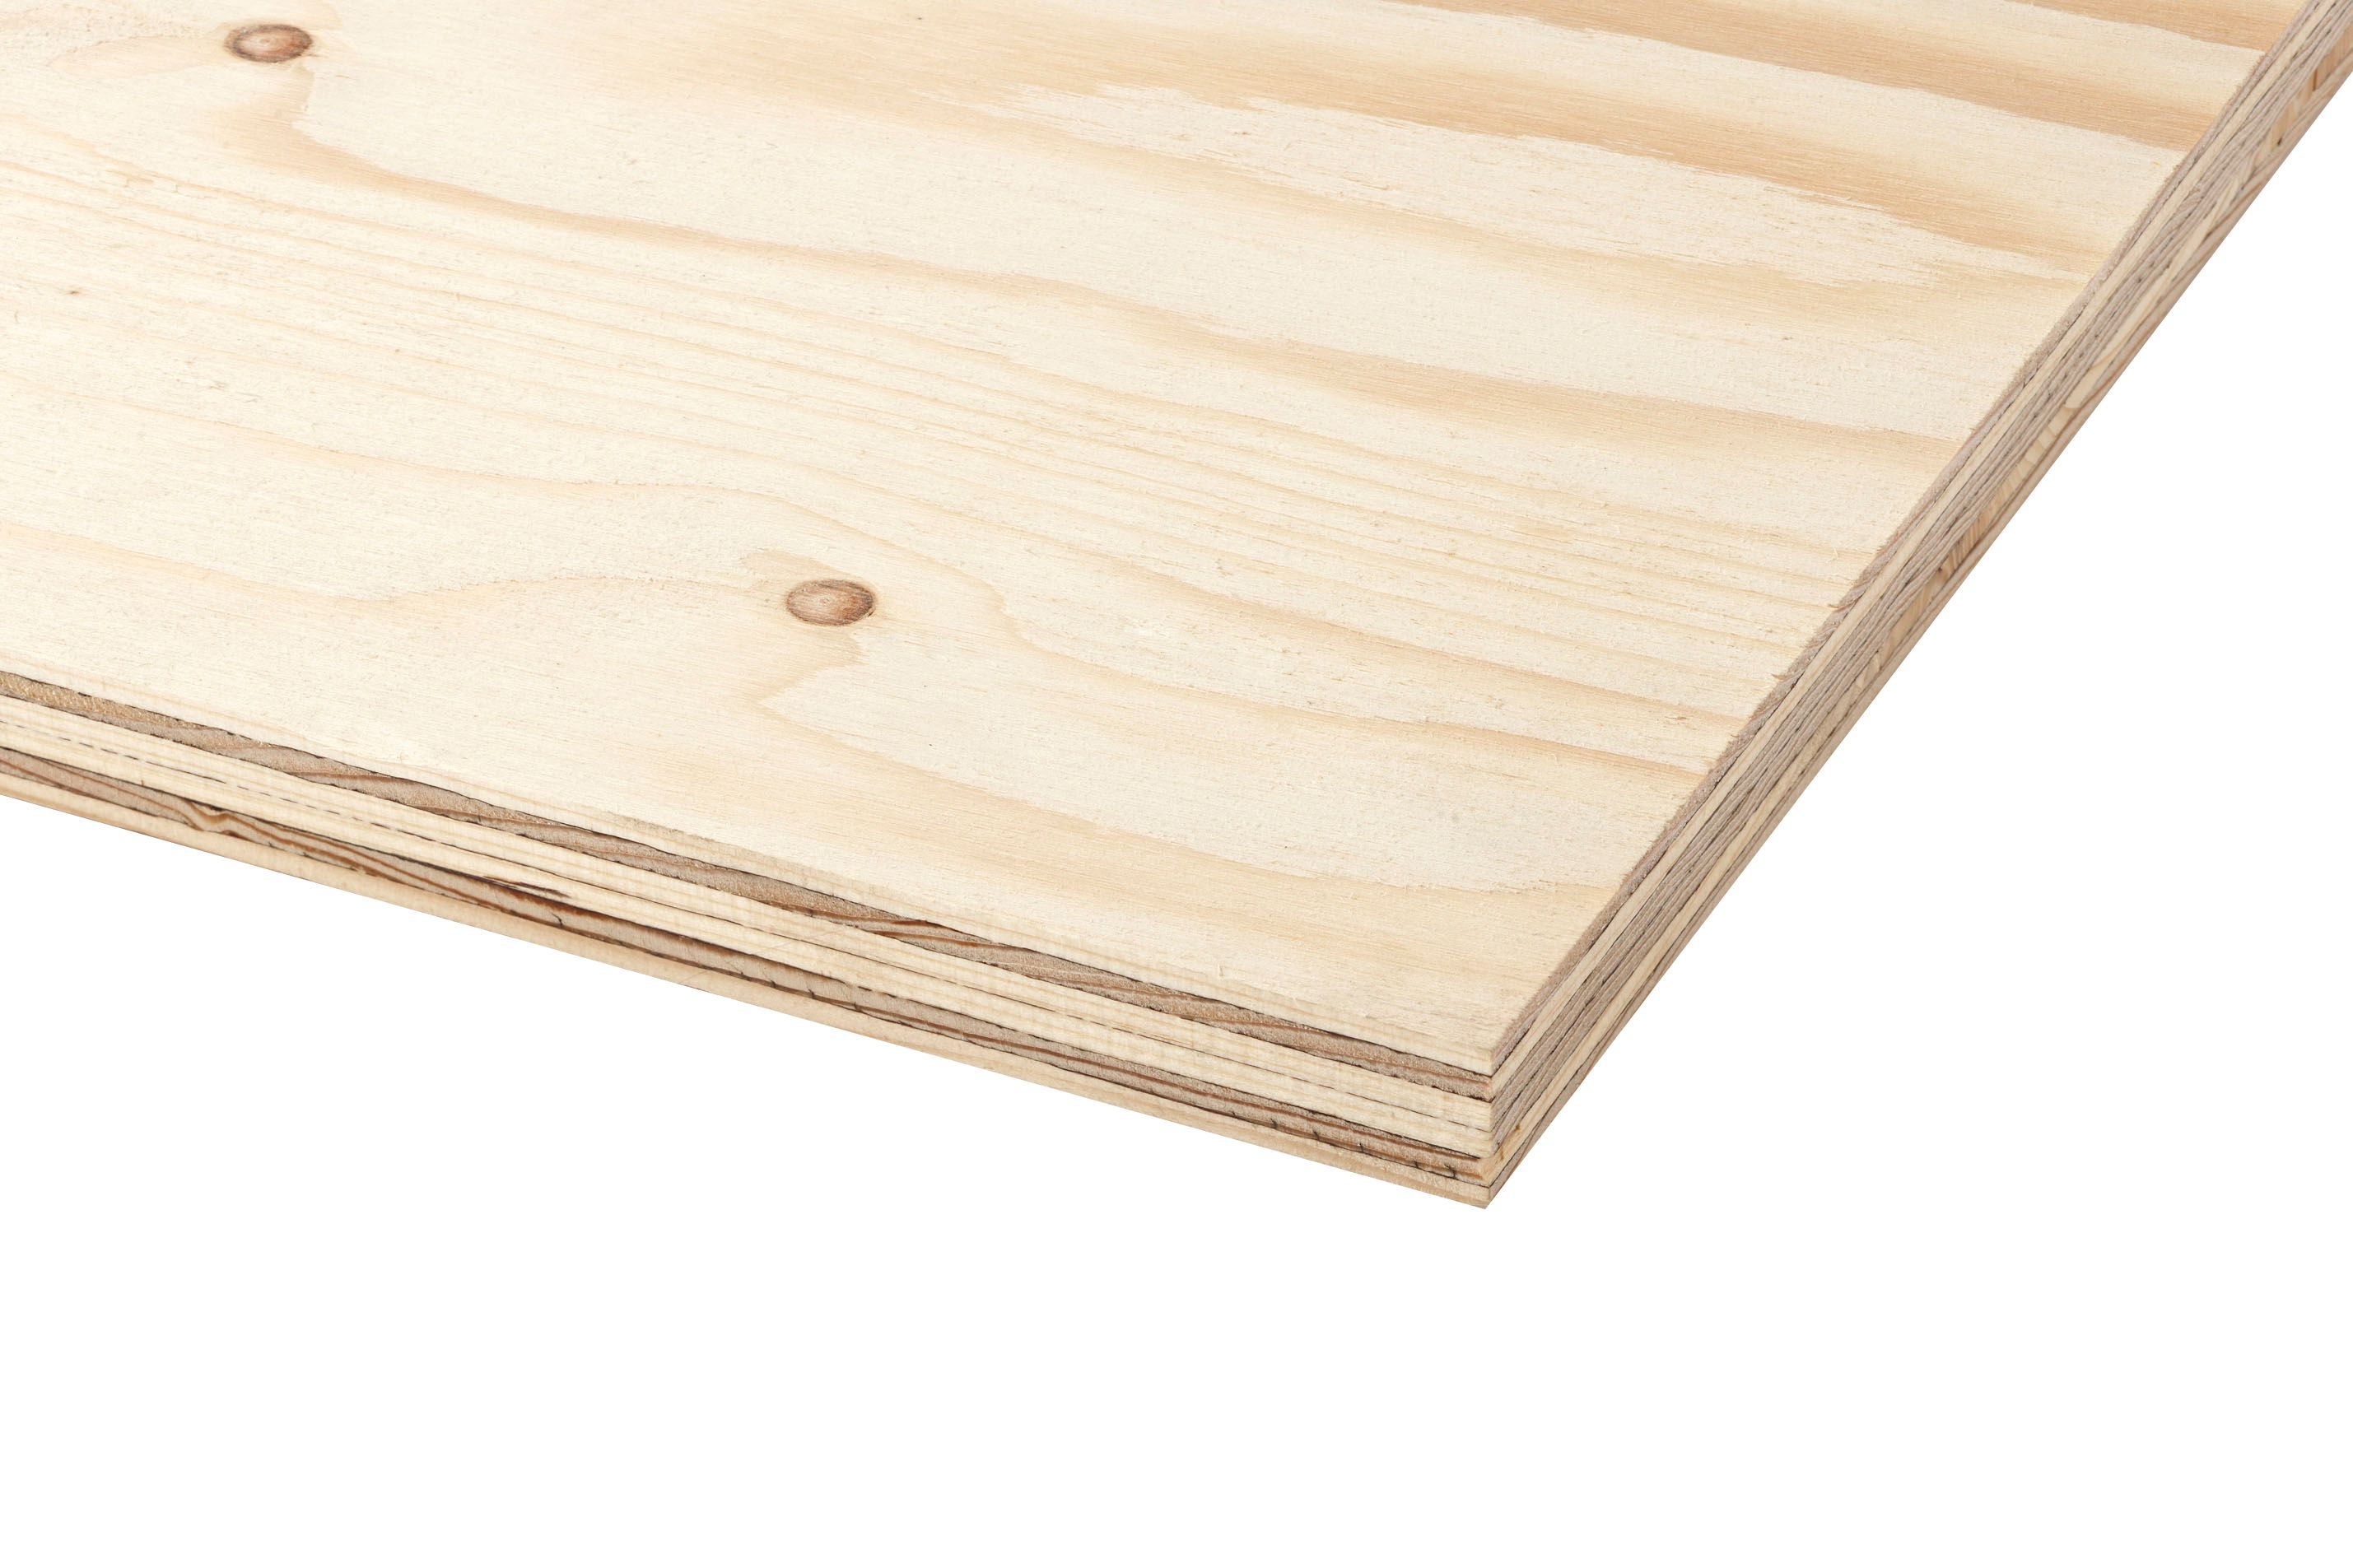 18mm Betonplex Spruce Plywood Board Th 18mm W 1220mm L 2440mm